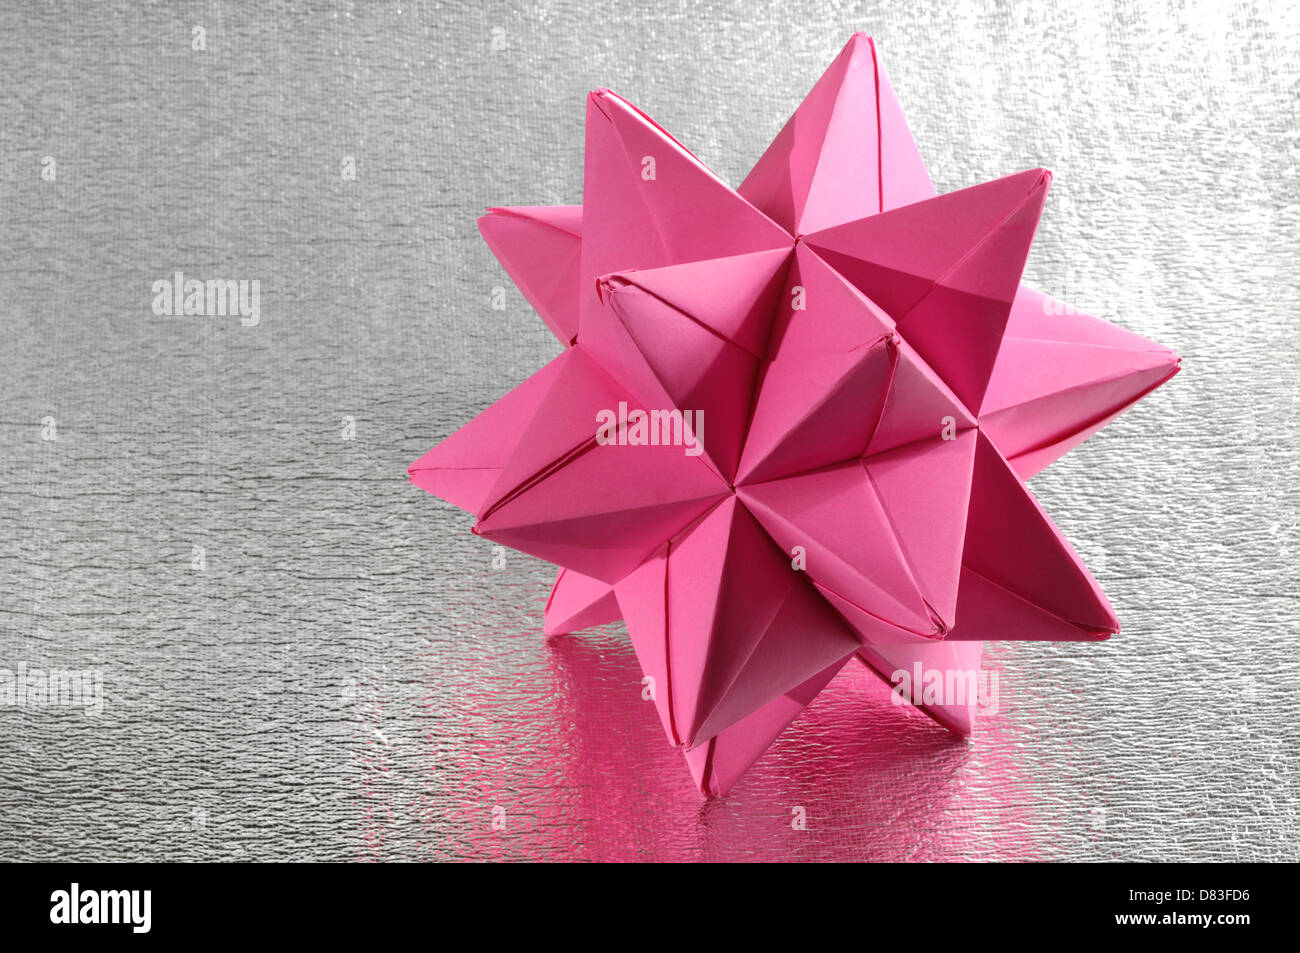 Abstract purple Origami polyhedron figure on silvery background - Stock Image